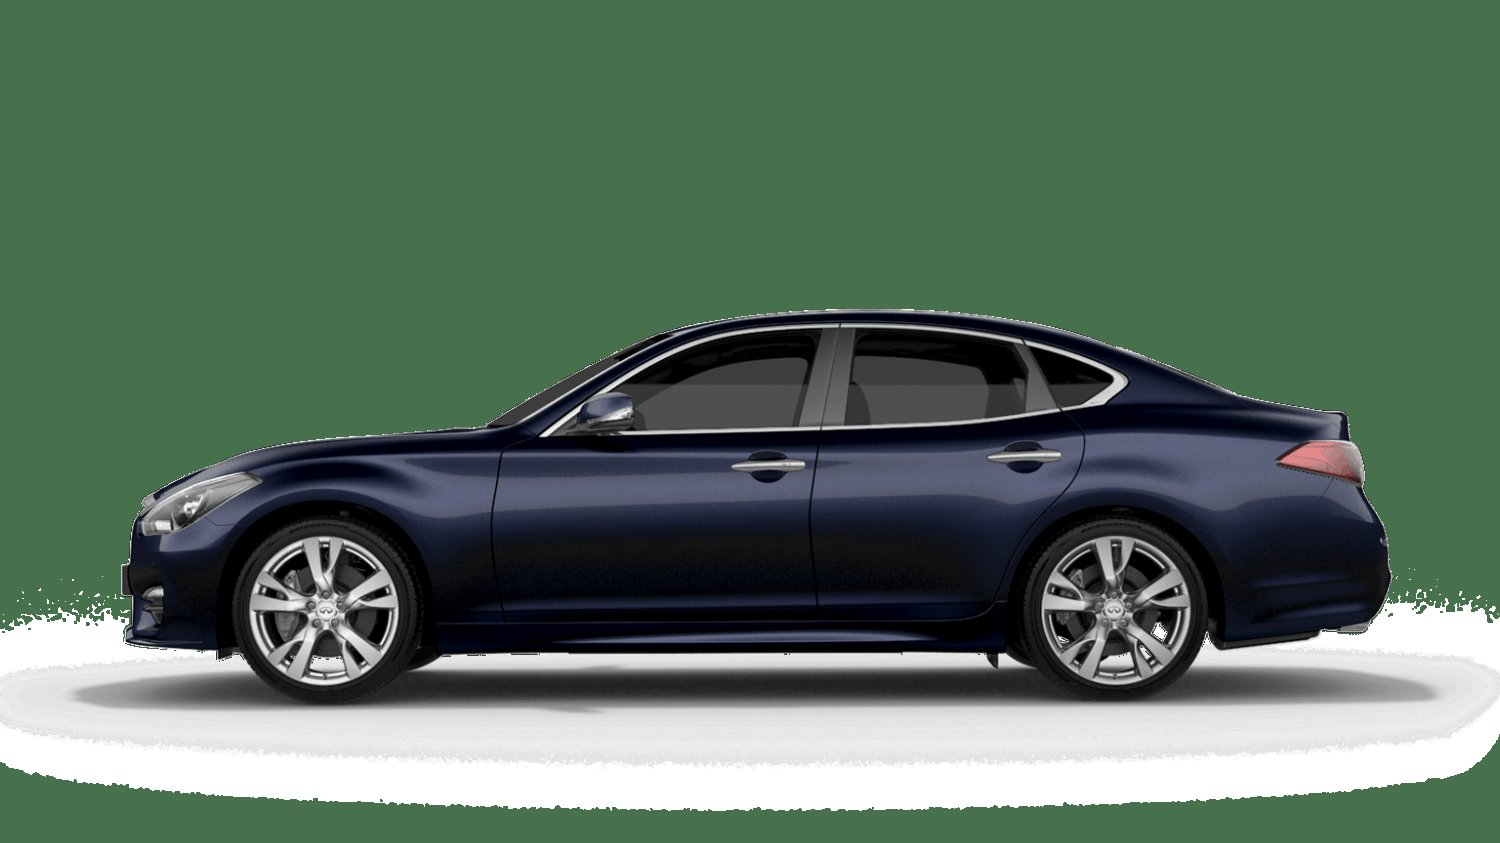 Latest New Infiniti Cars Models Saloons Coupes Crossovers Free Download